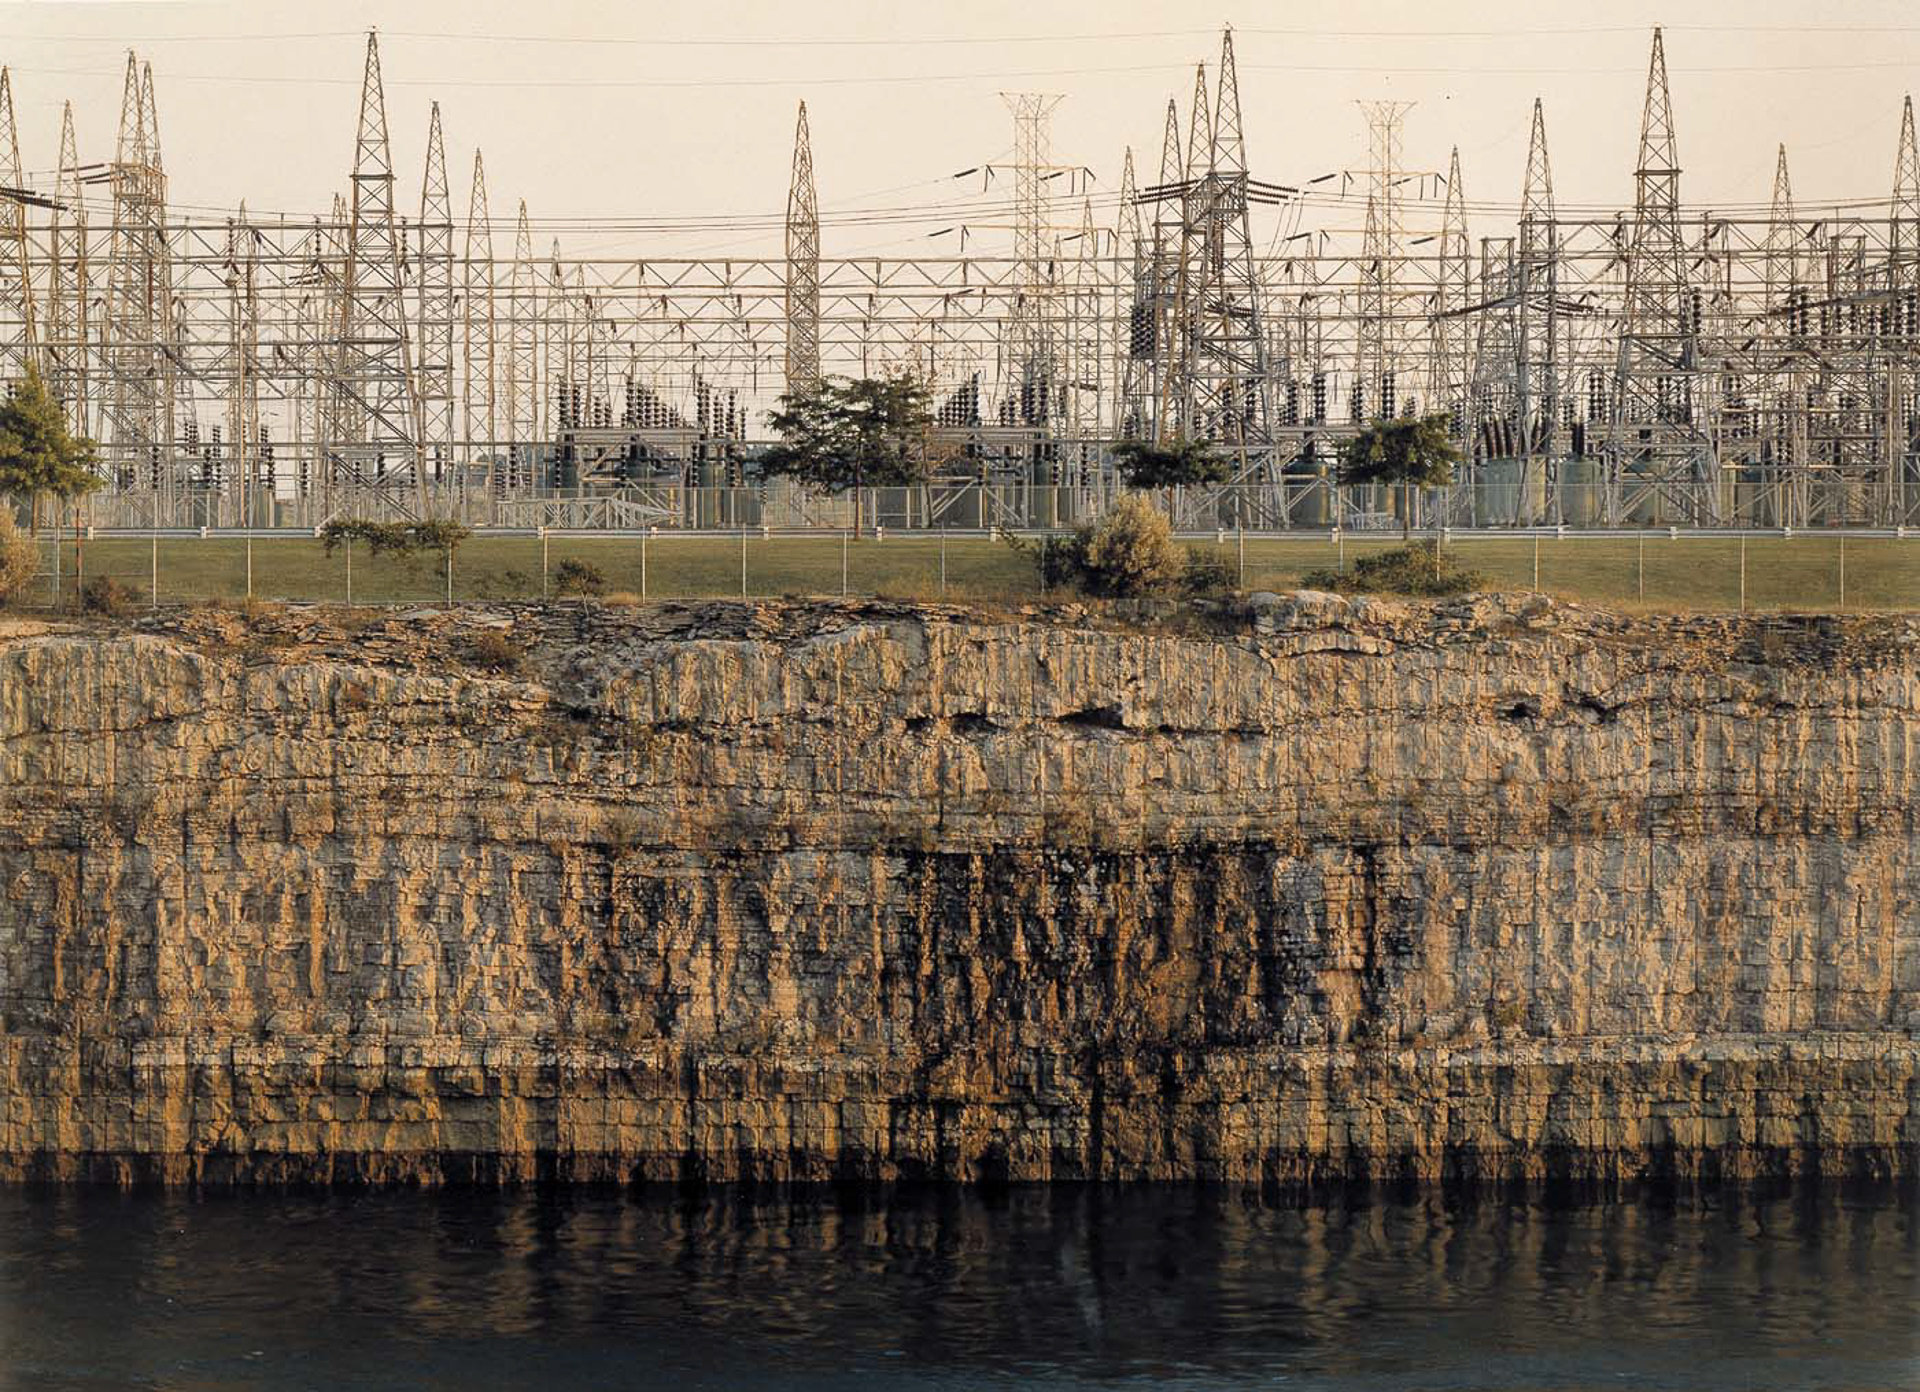 John_Pfahl--Power places--Niagara Power Project, Niagara Falls.jpg